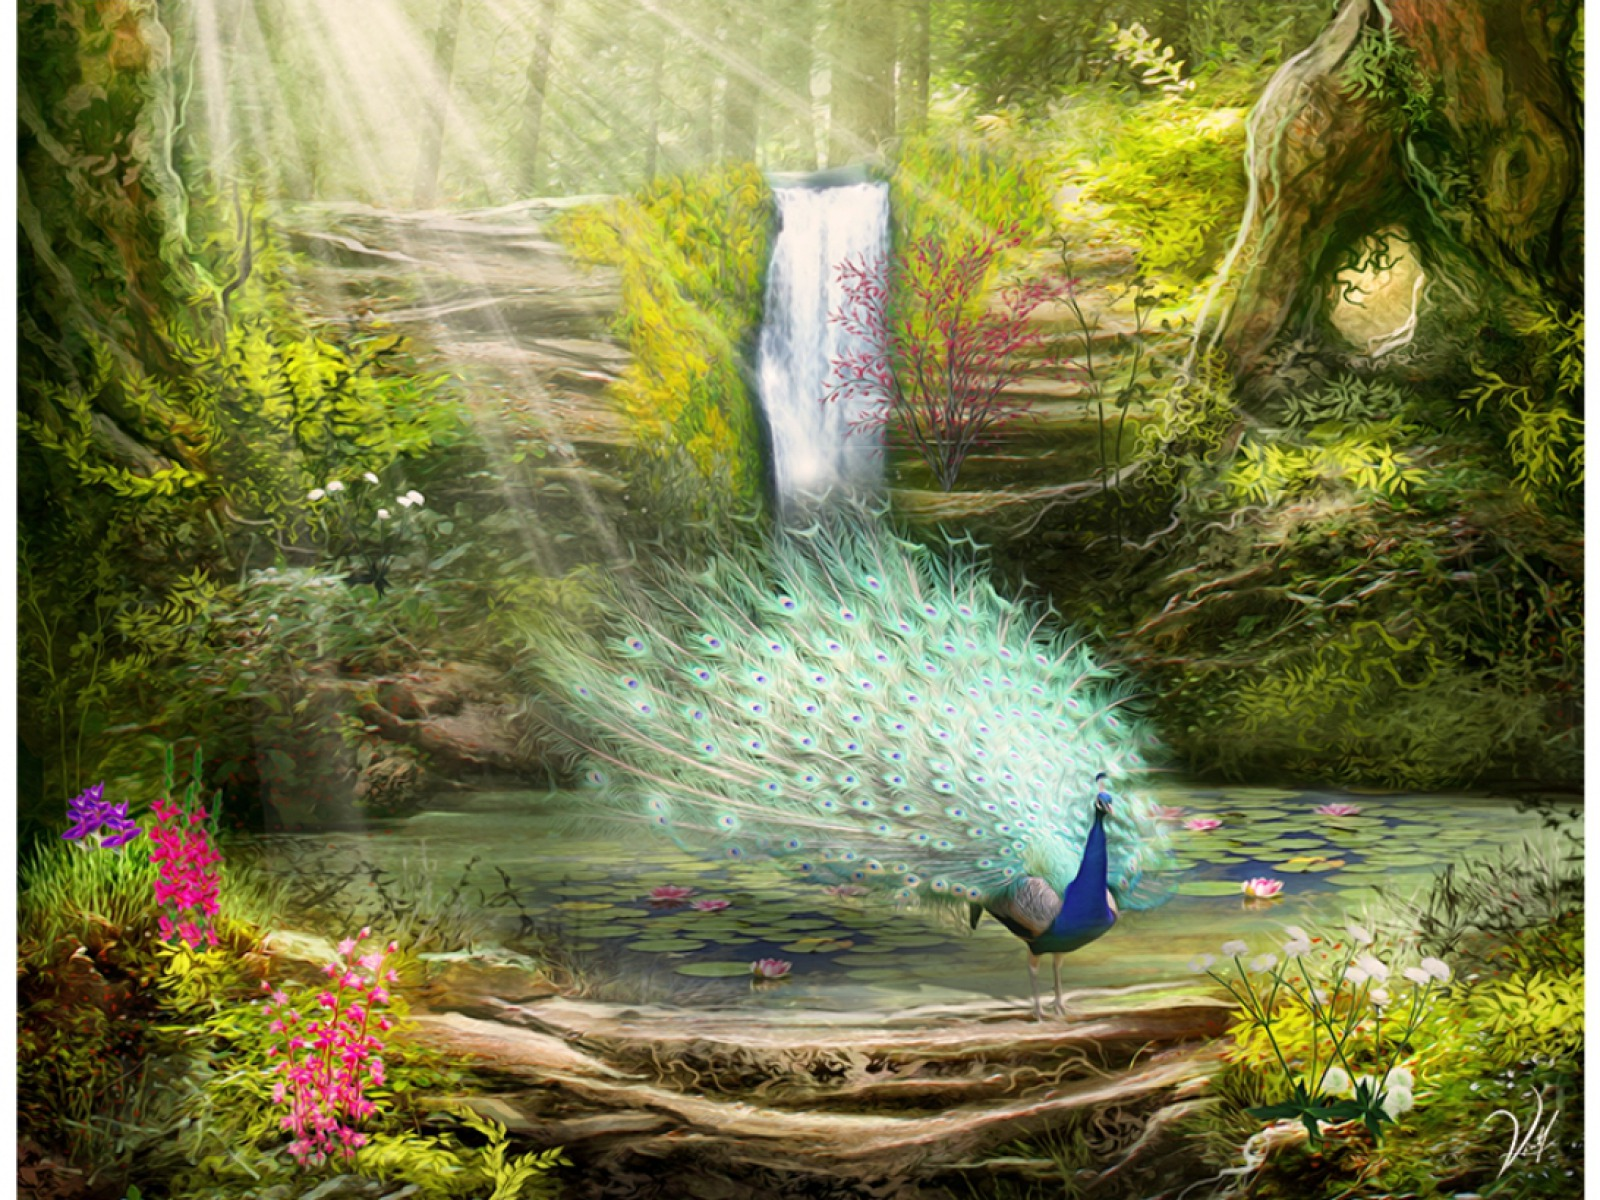 Peacock & Lovely Place Wallpapers